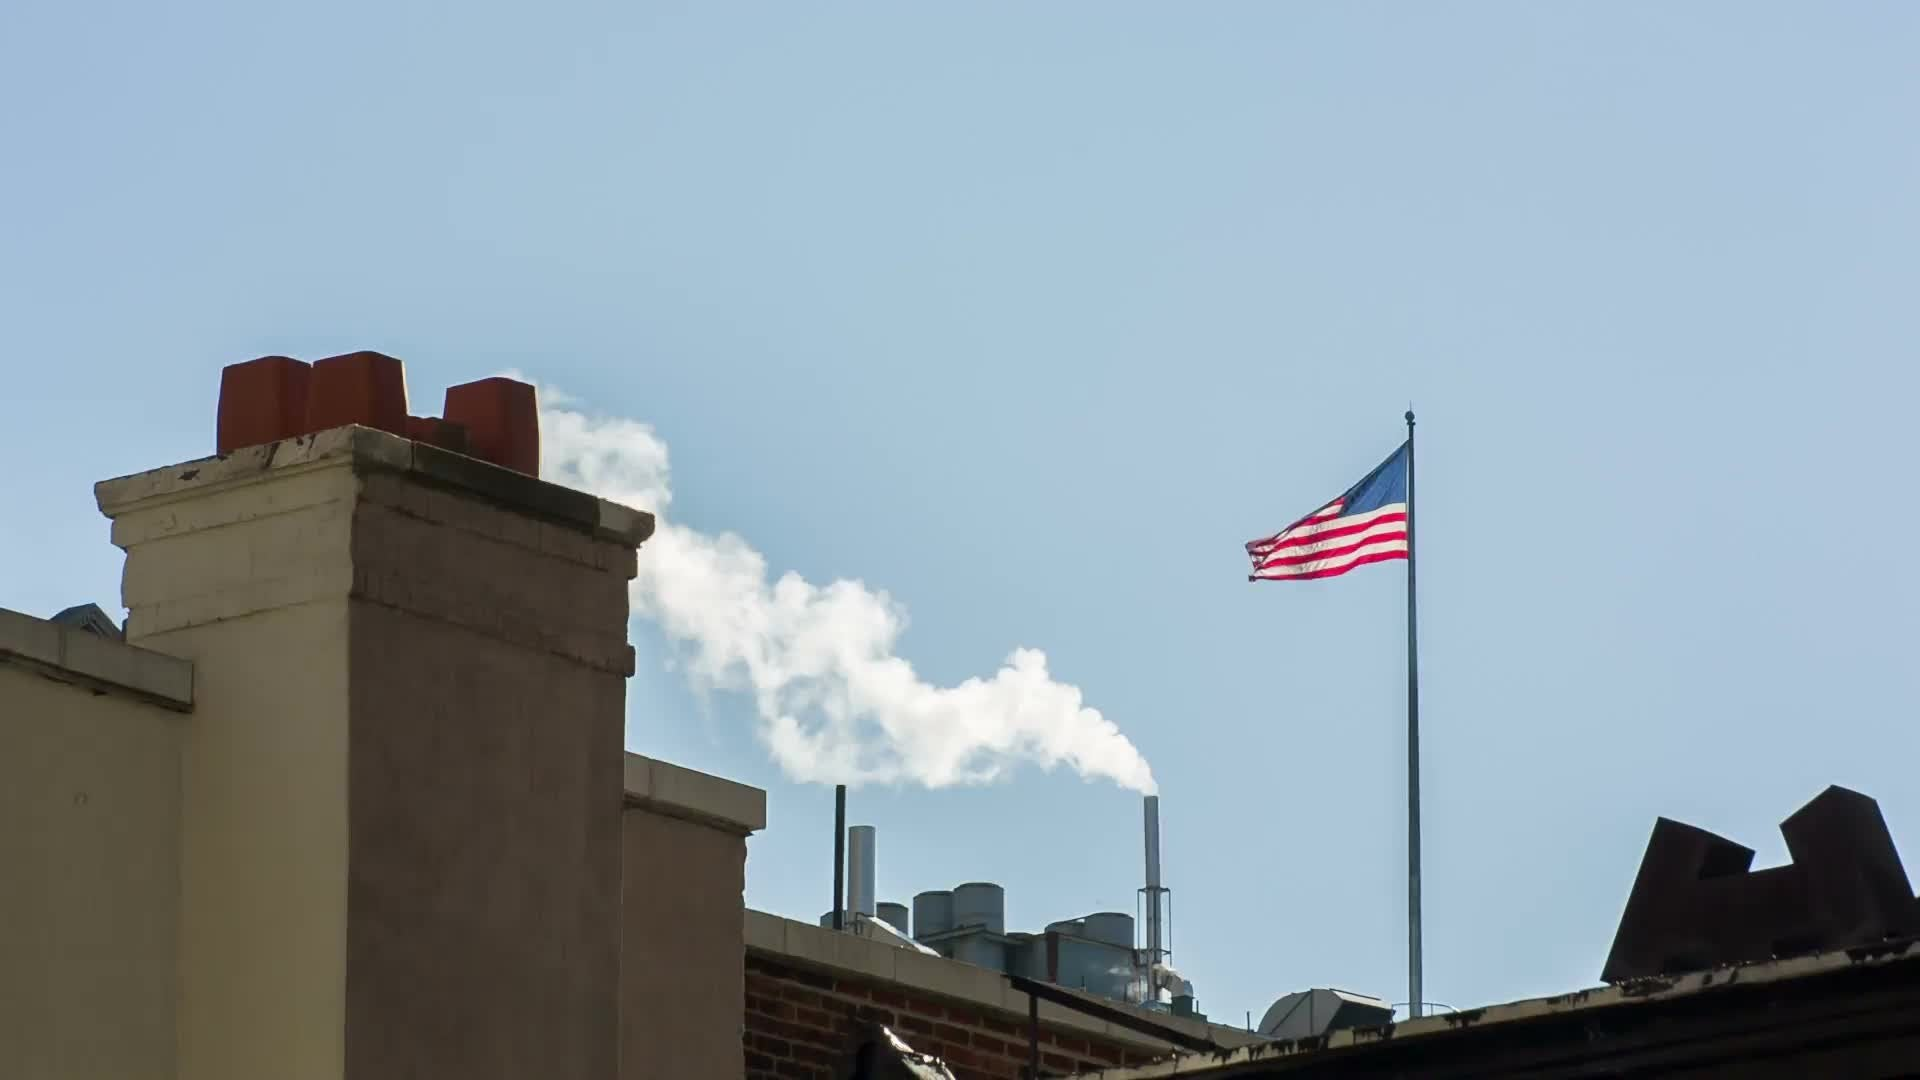 American flag on rooftop with steampipe blowing smoke in New York City